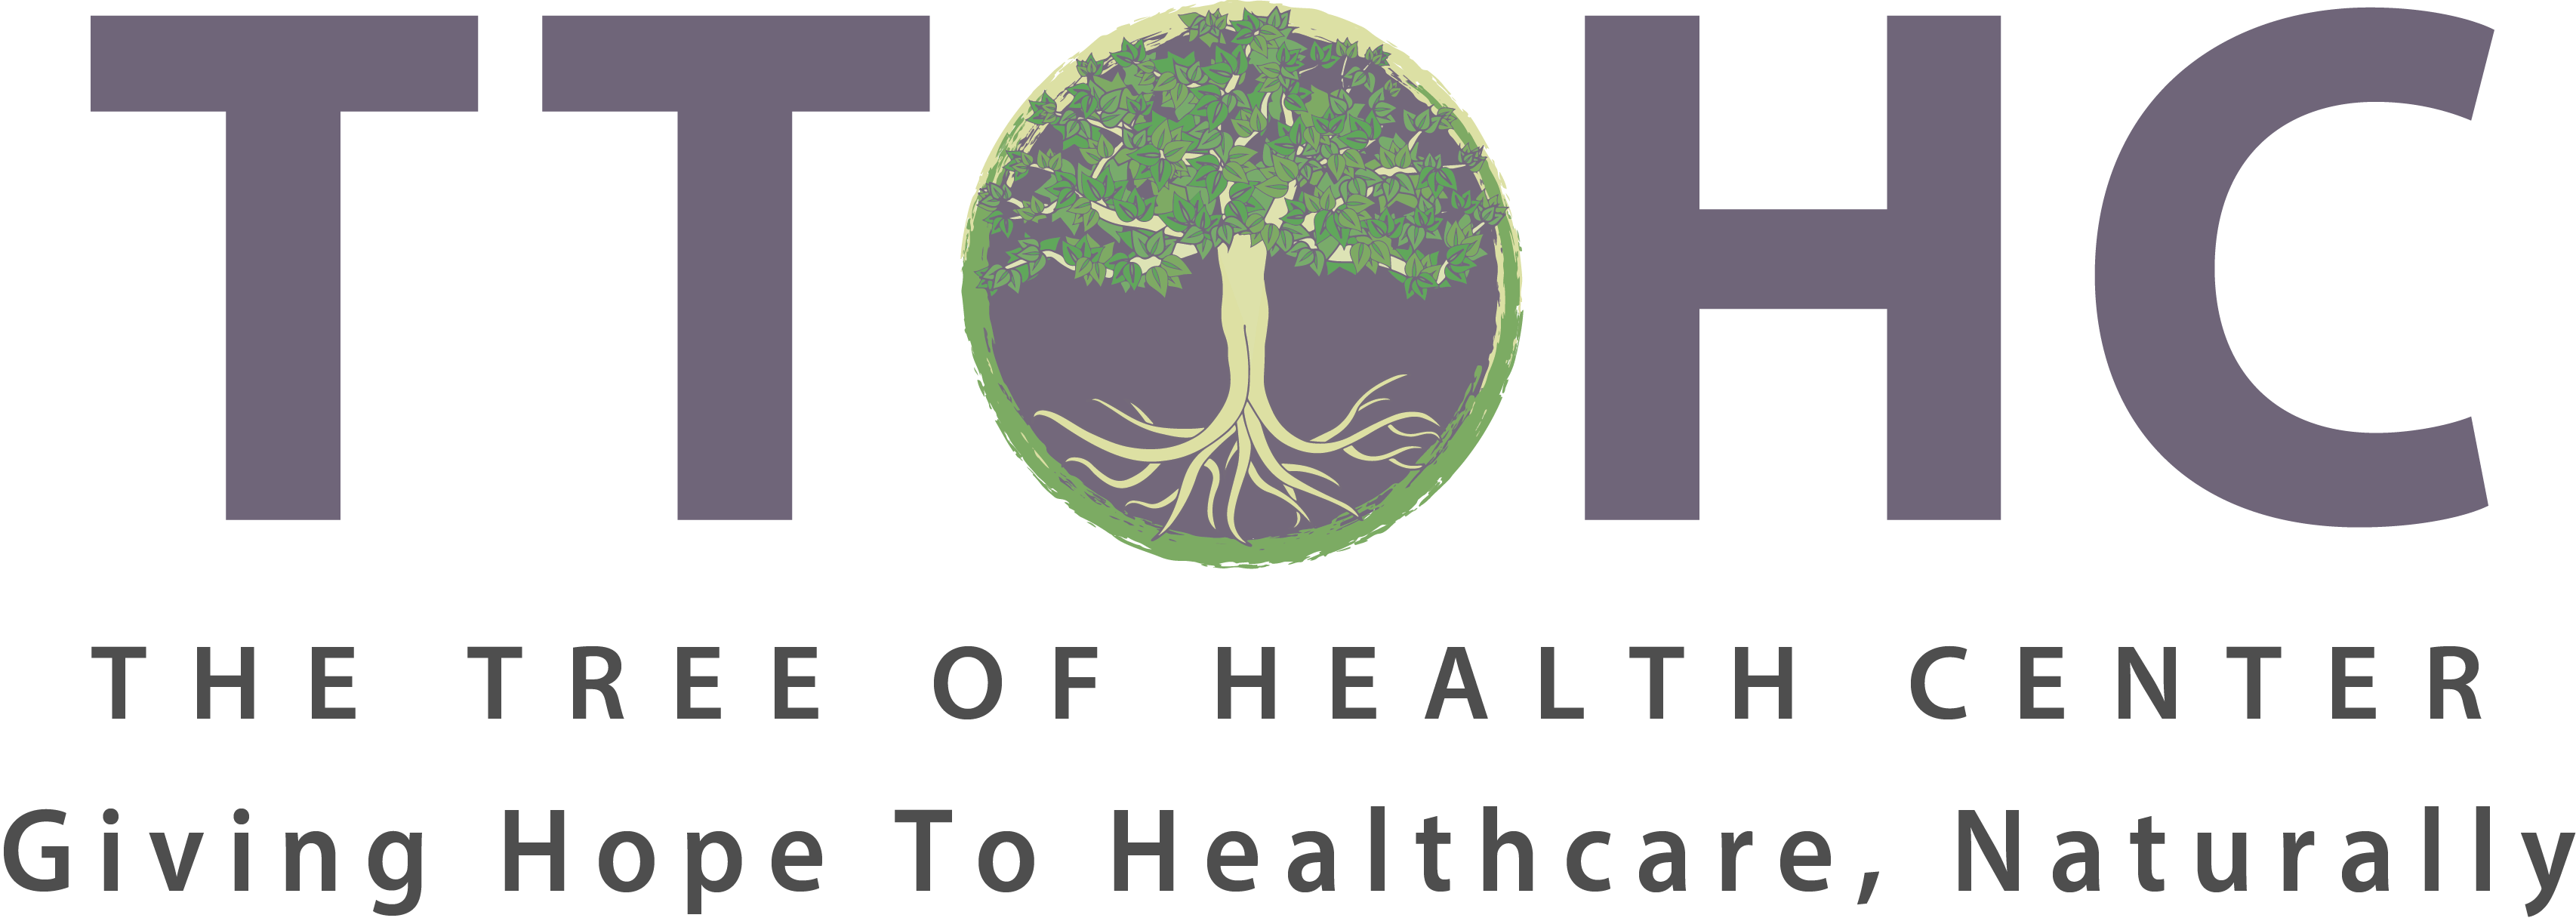 The Tree of Health Center's Logo